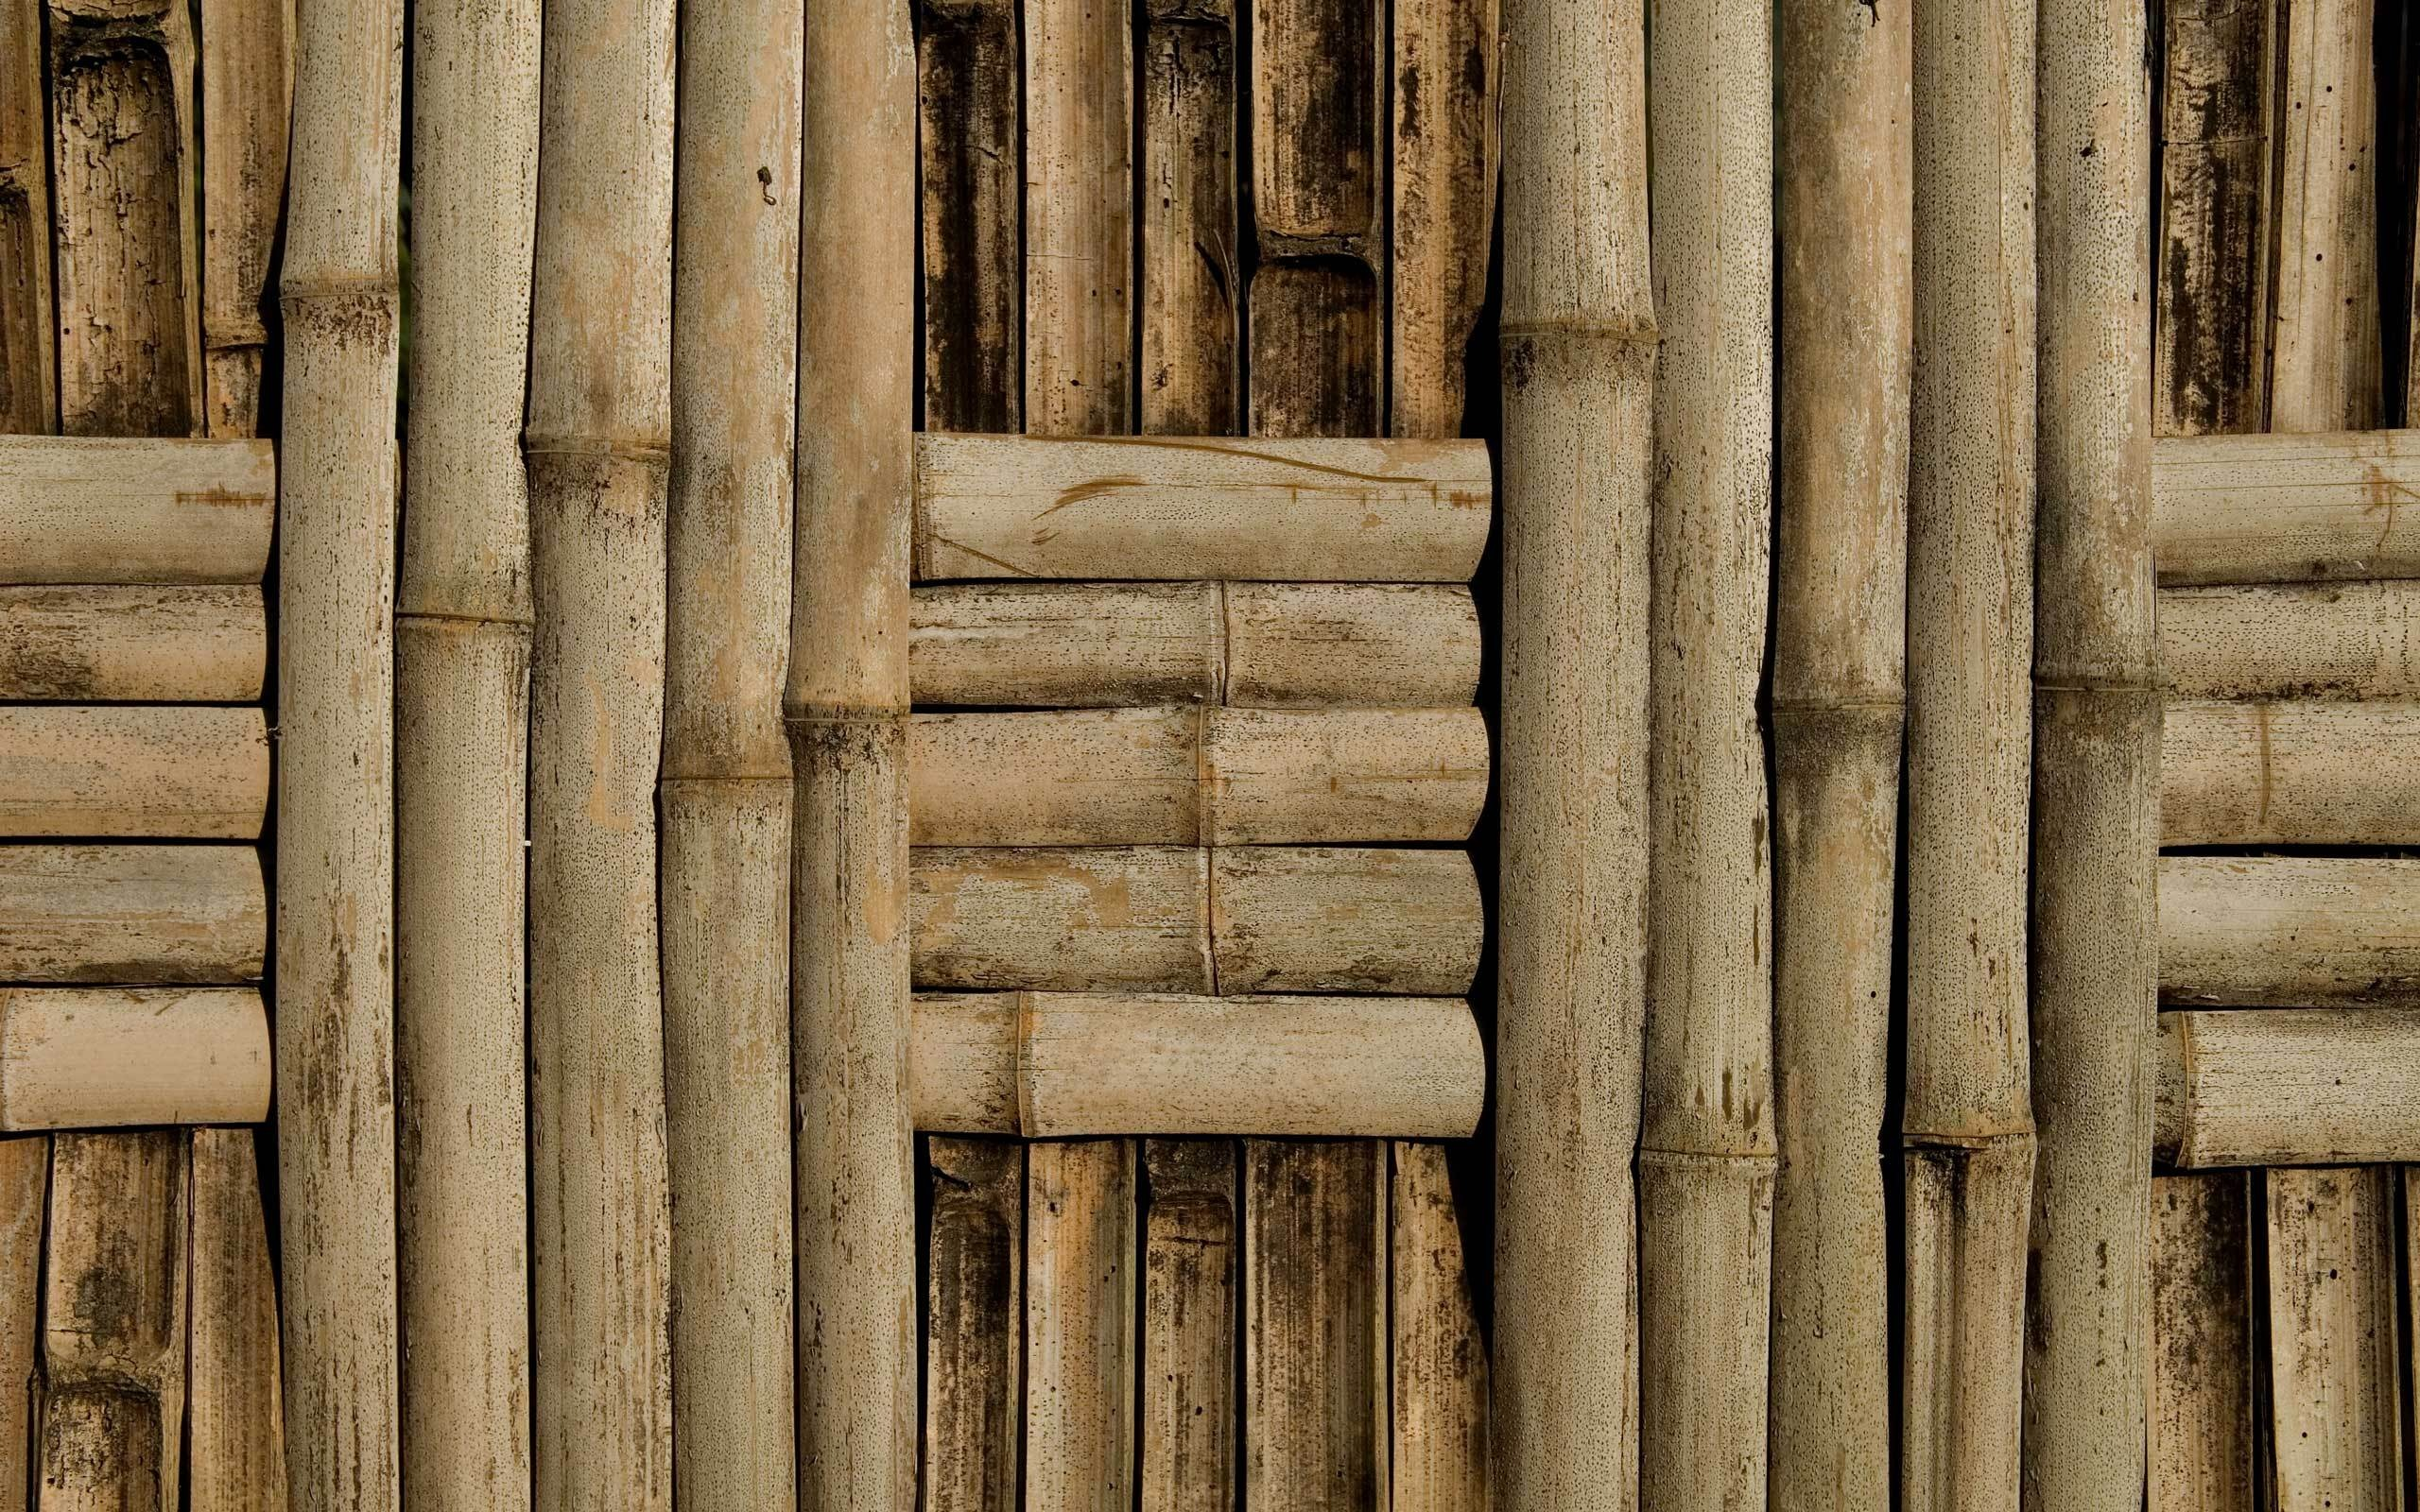 bamboo, texture bamboo , bamboo texture, photo, background